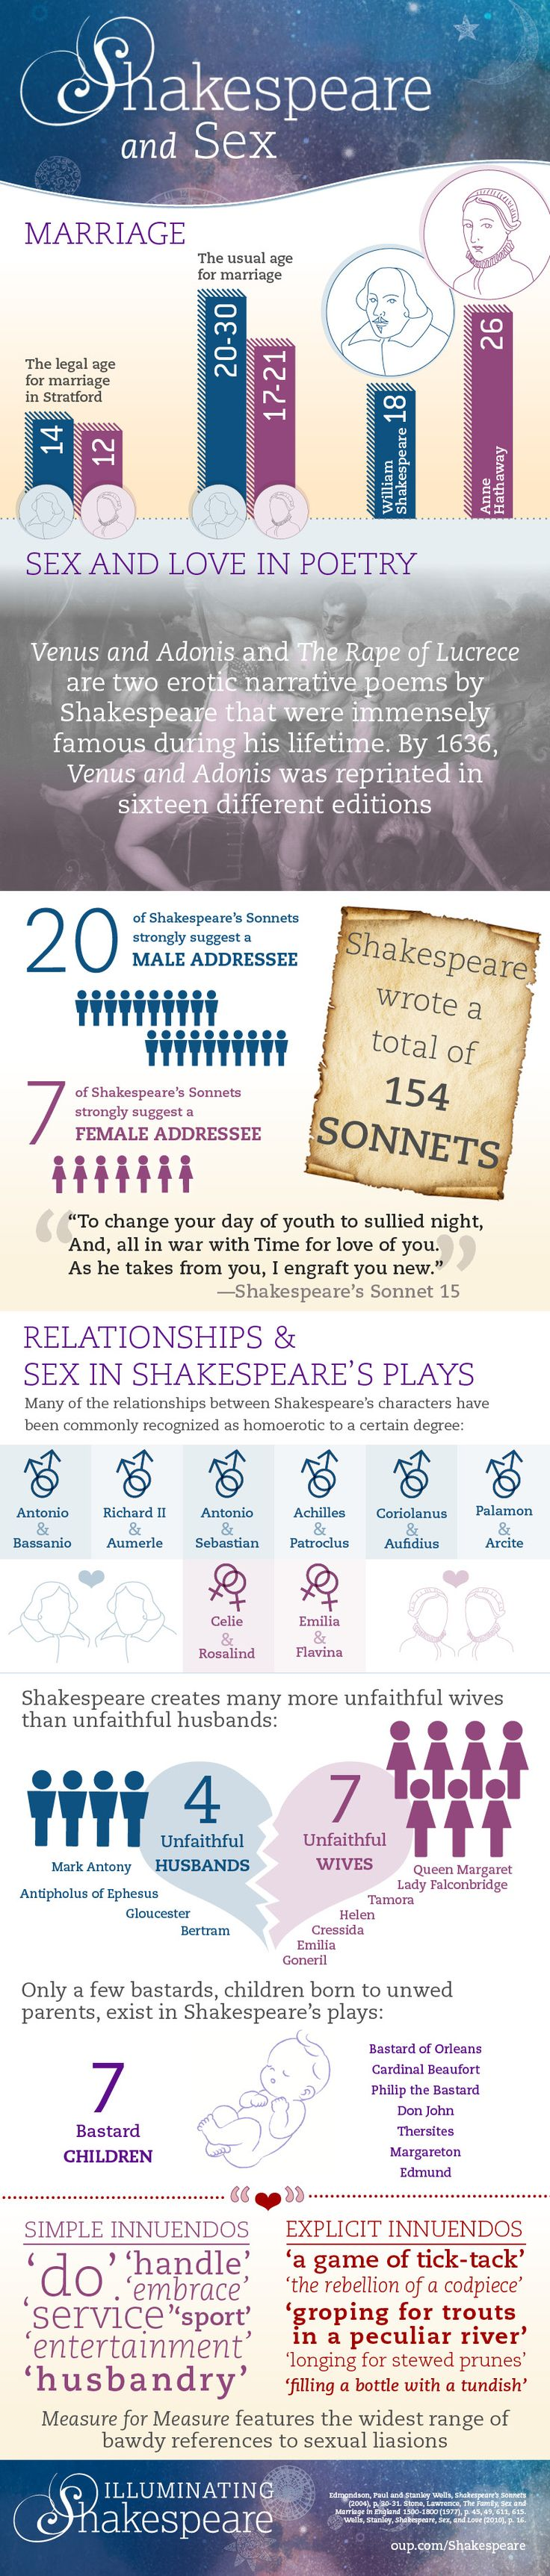 Interestingly, Shakespeare and Hathaway presented a significant reversal of traditional marrying ages, namely for their eight year age difference. How did Shakespeare inject contemporary notions of sex and marriage, such as age, into his plays and sonnets? #marriage #affair #love